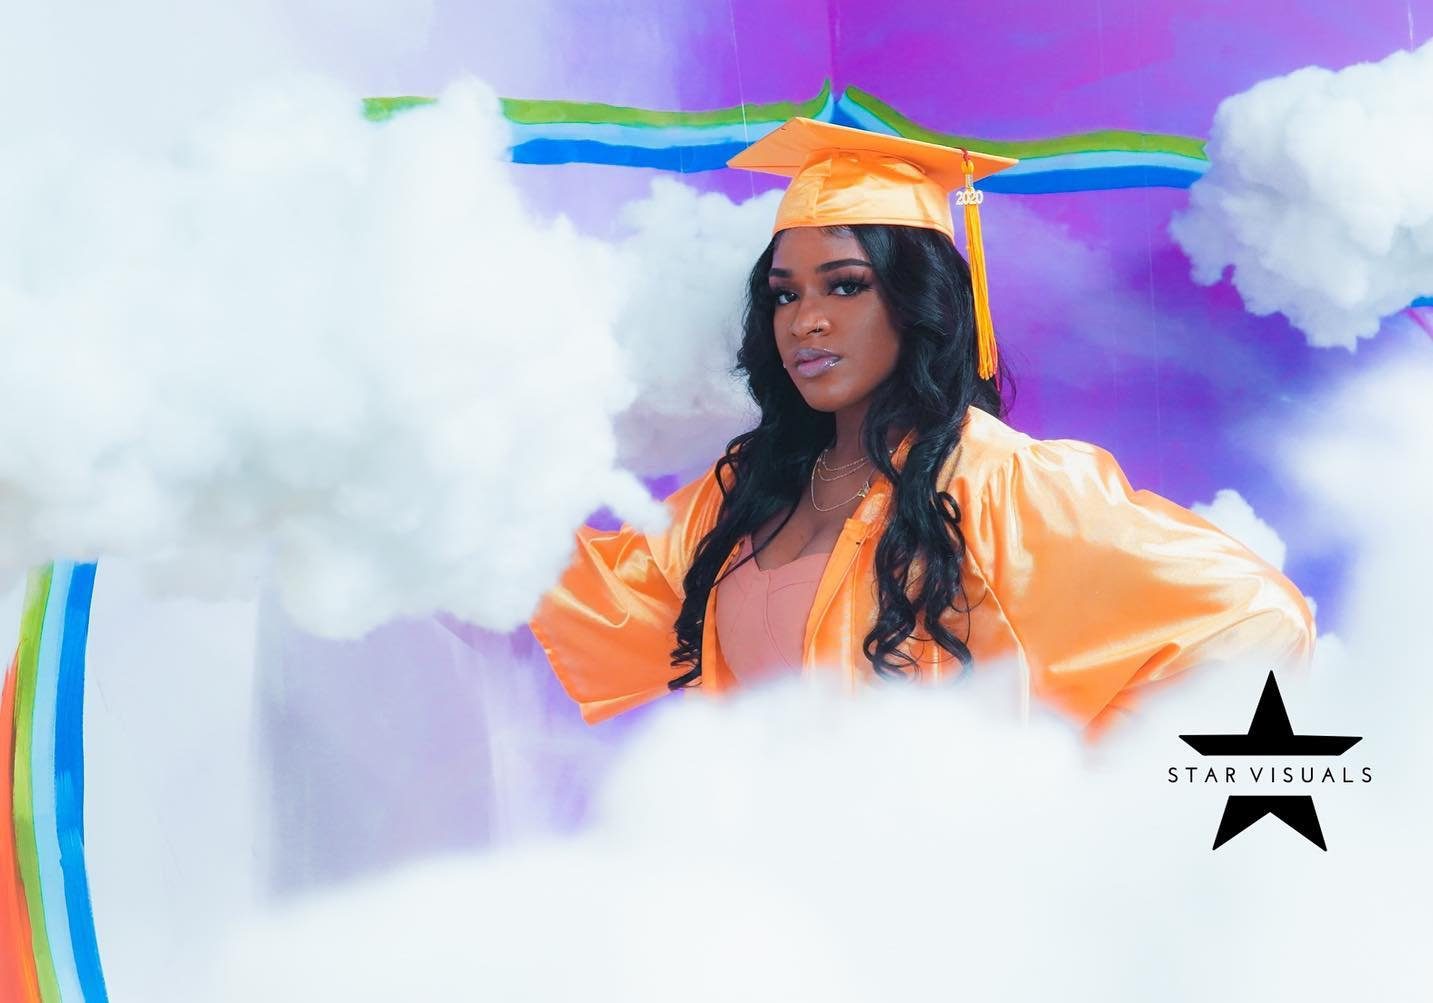 GRADUATION! 3 PACKAGE TYPES AVAILABLE